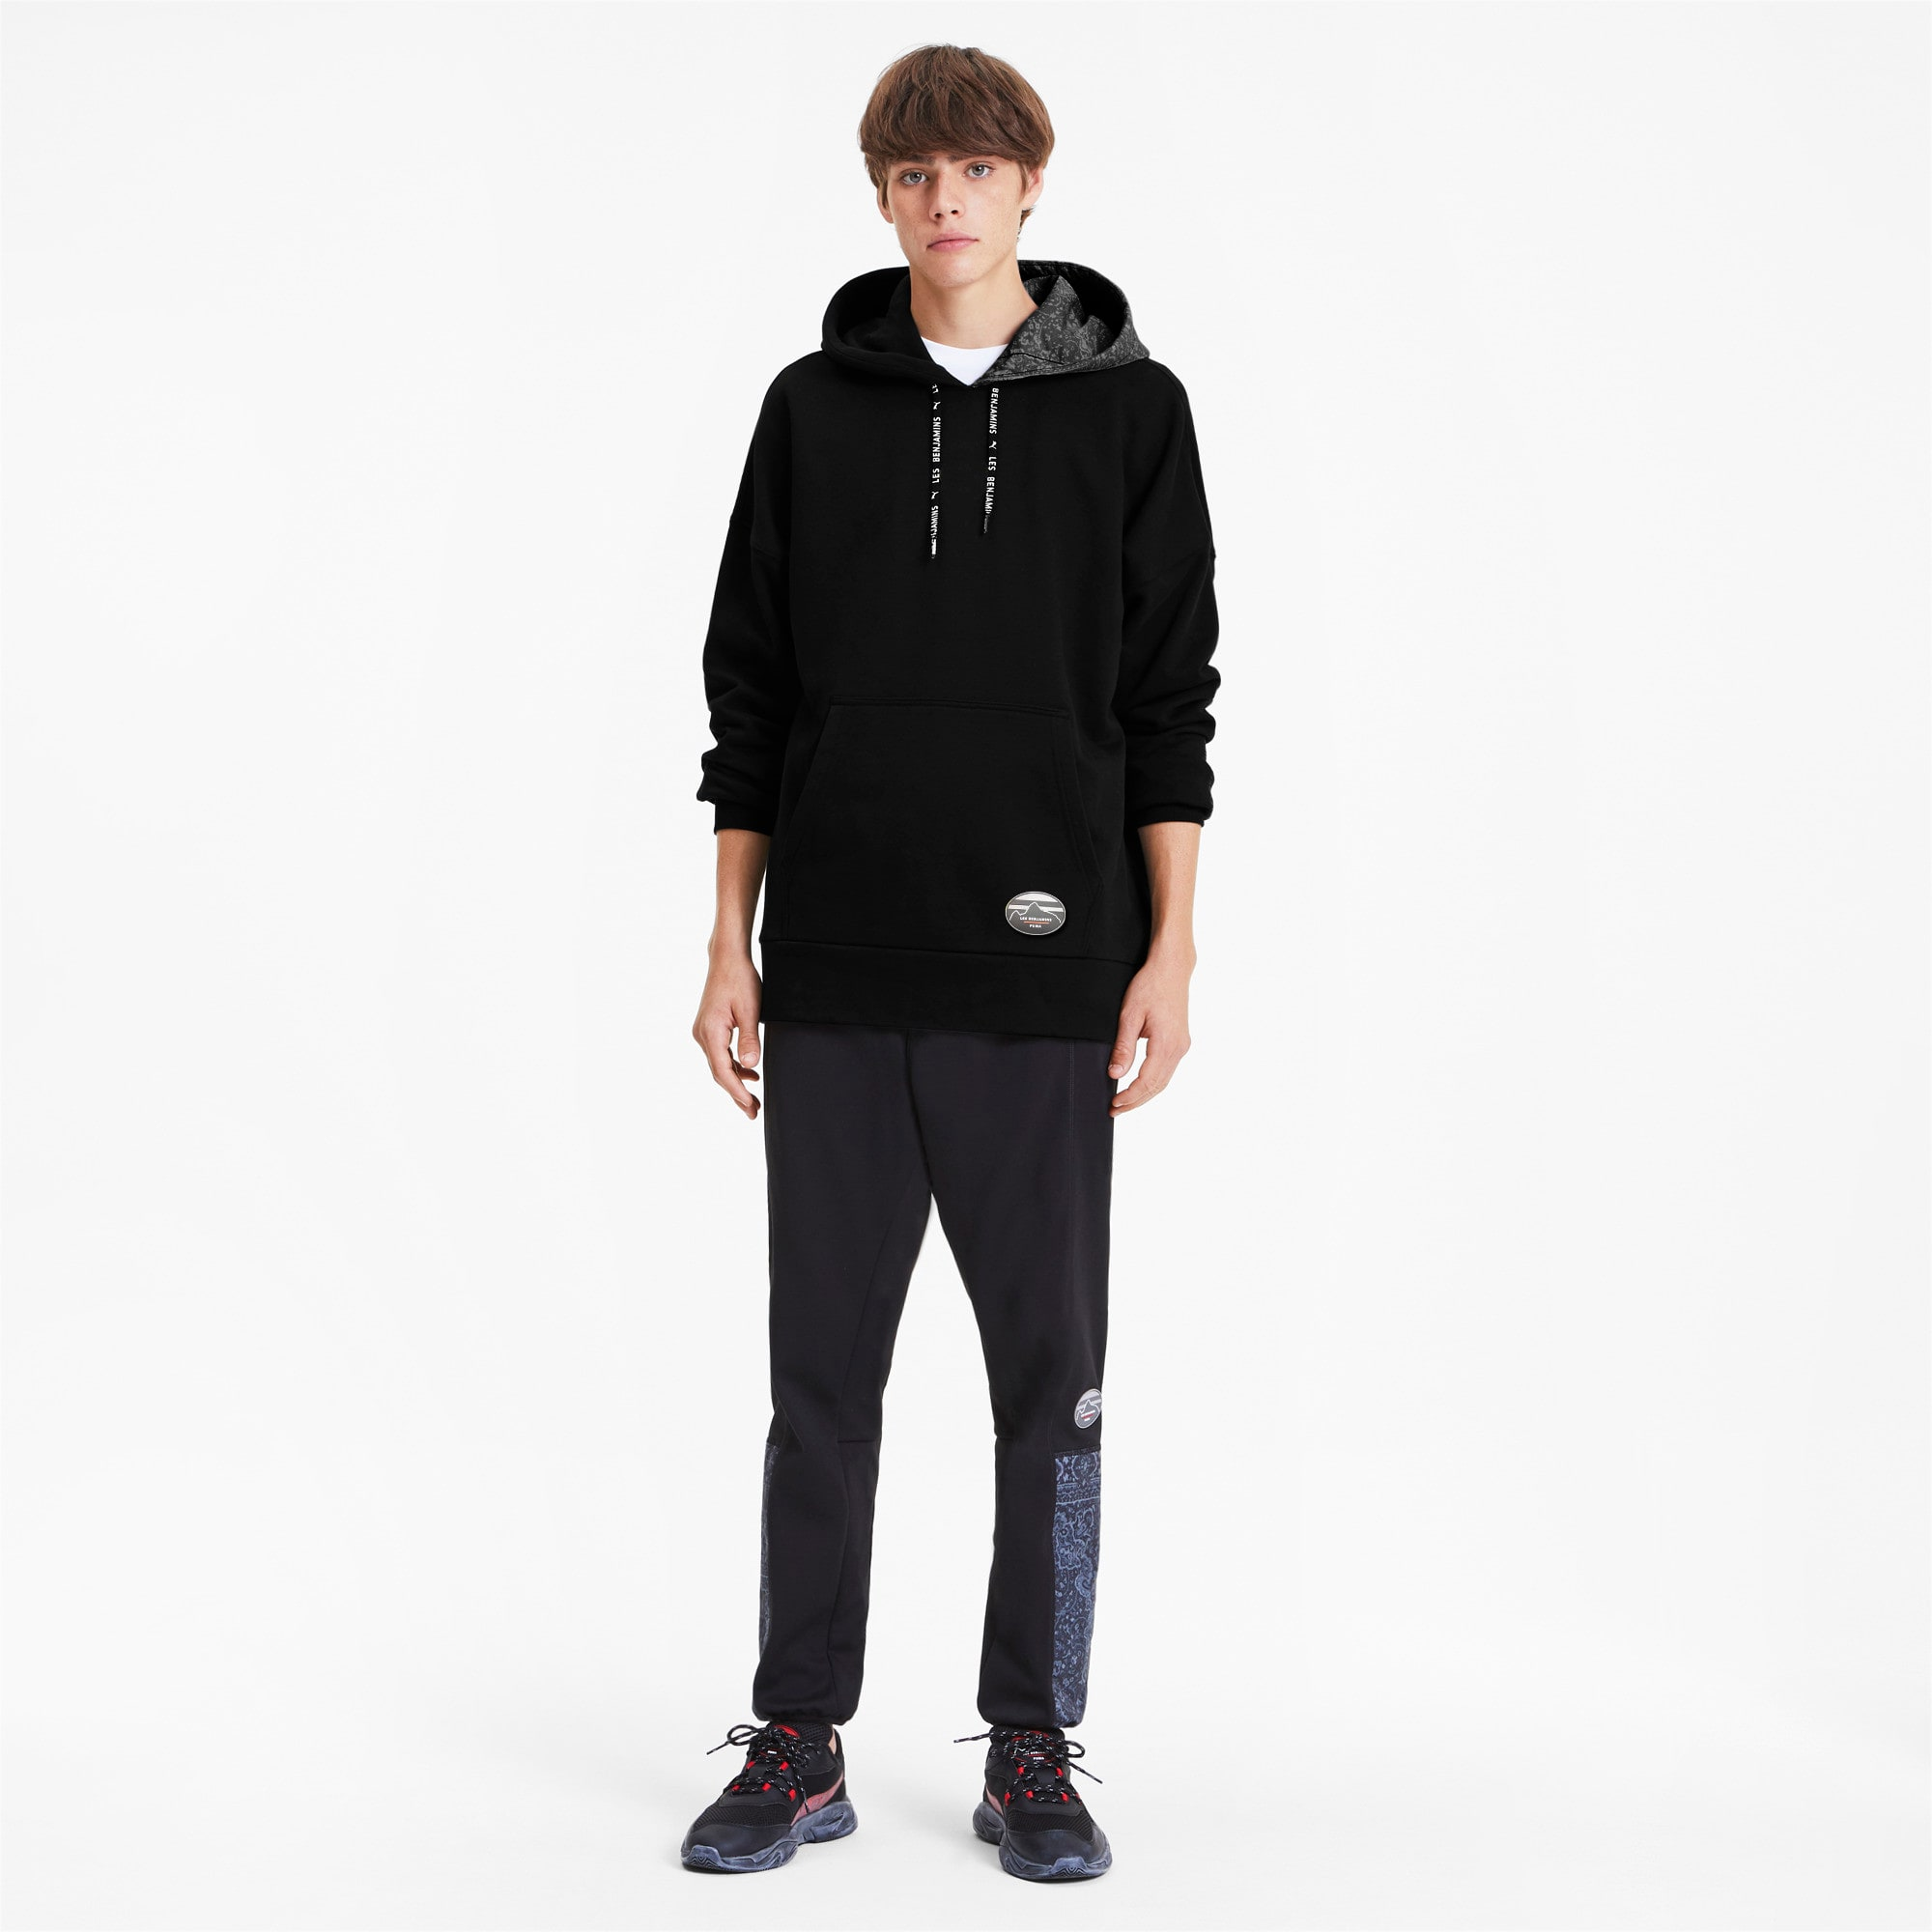 Thumbnail 4 of PUMA x LES BENJAMINS Men's Hoodie, Puma Black, medium